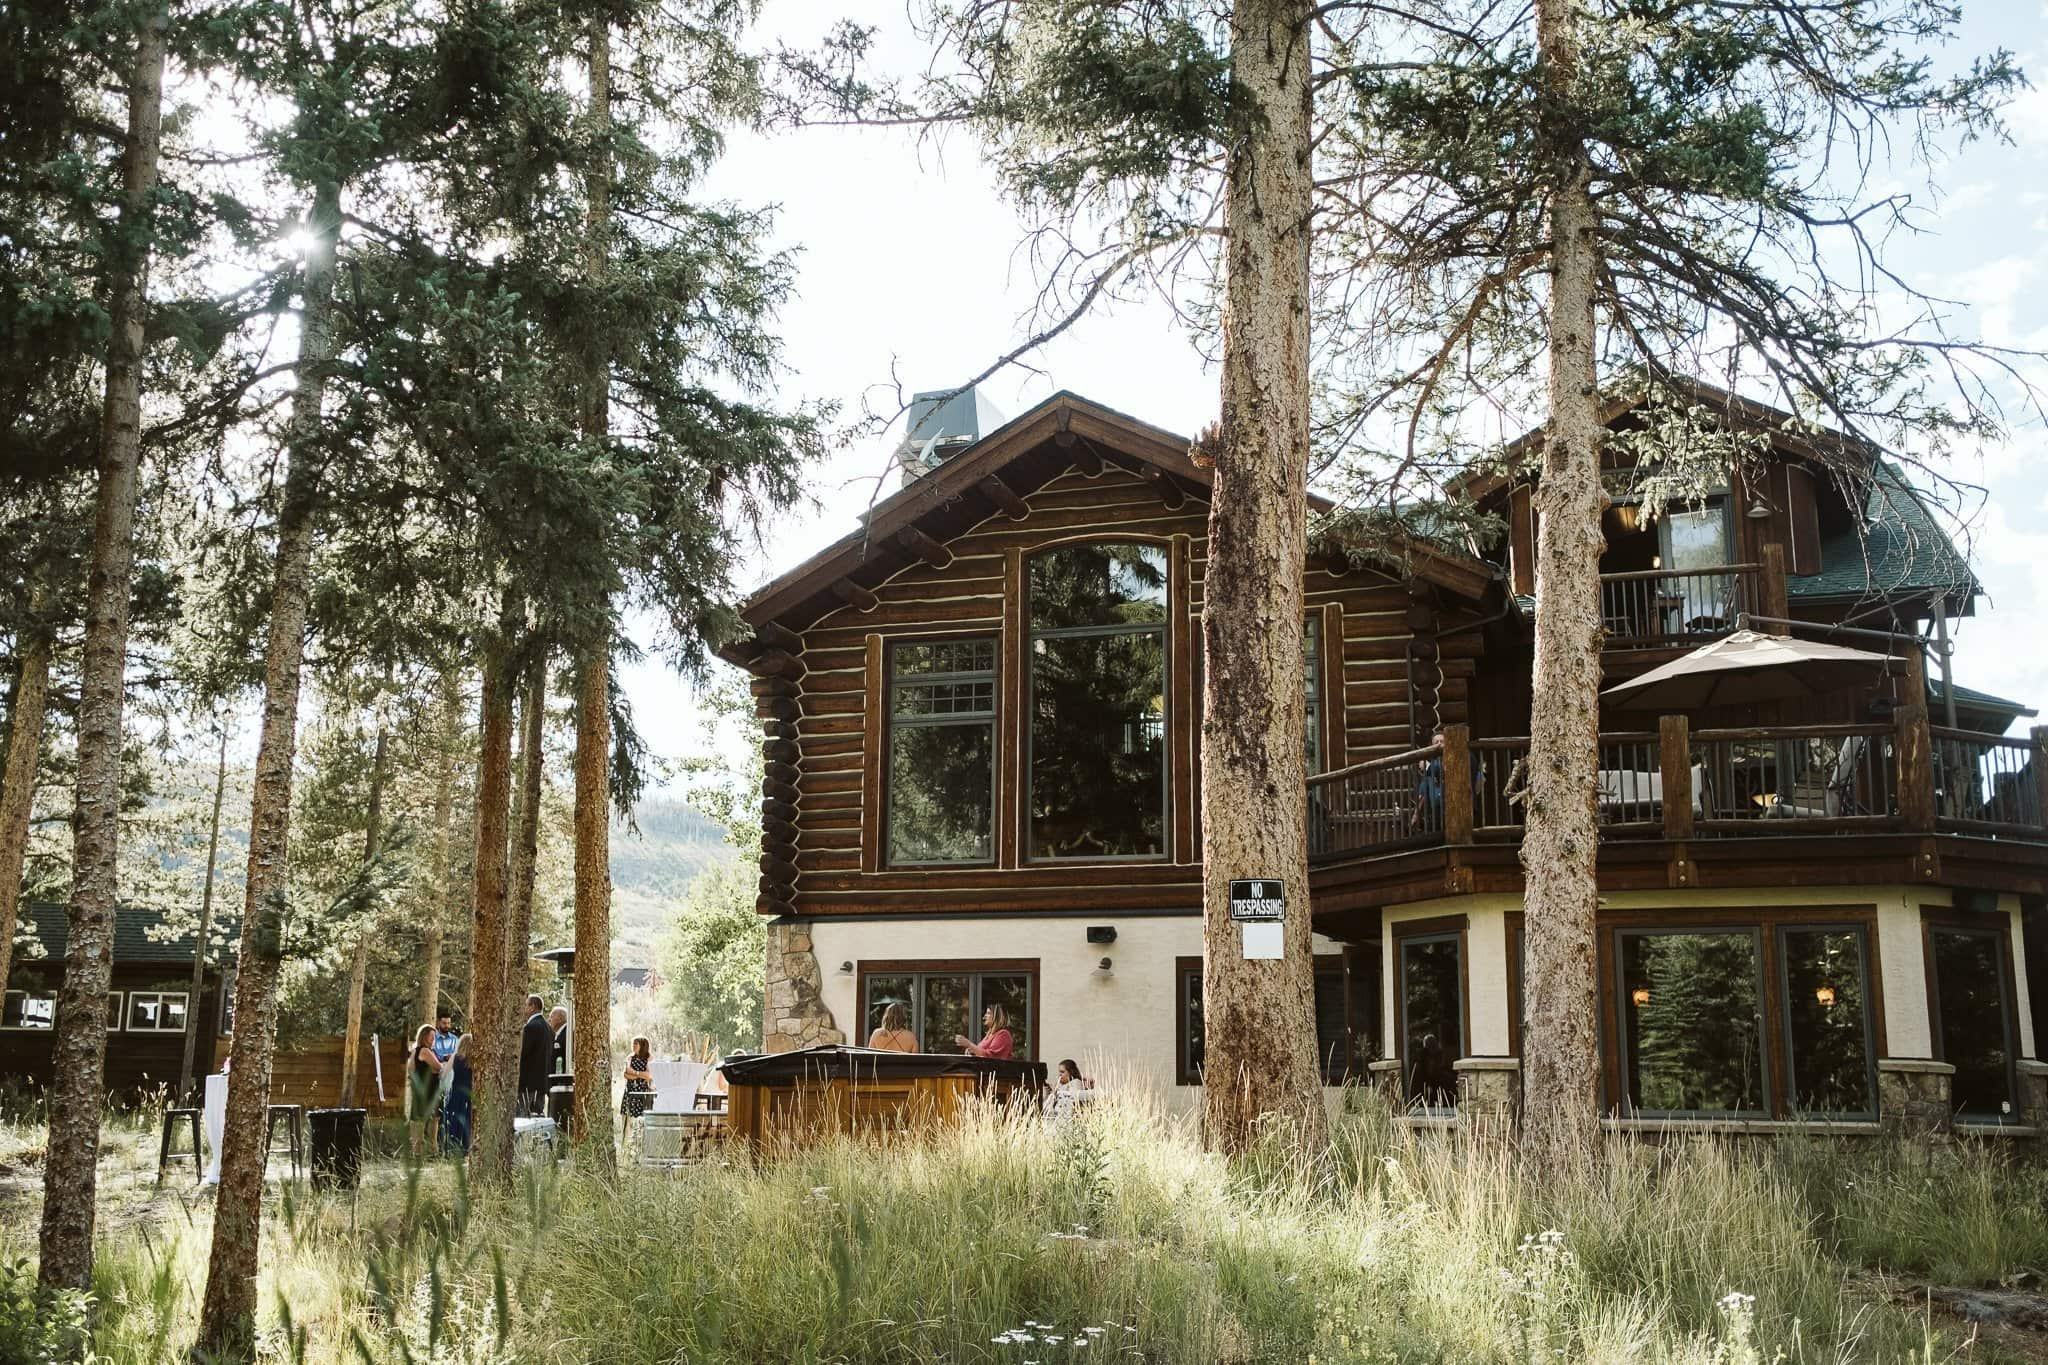 Rivertree Lodge wedding venue in Breckenridge, Colorado intimate wedding venue